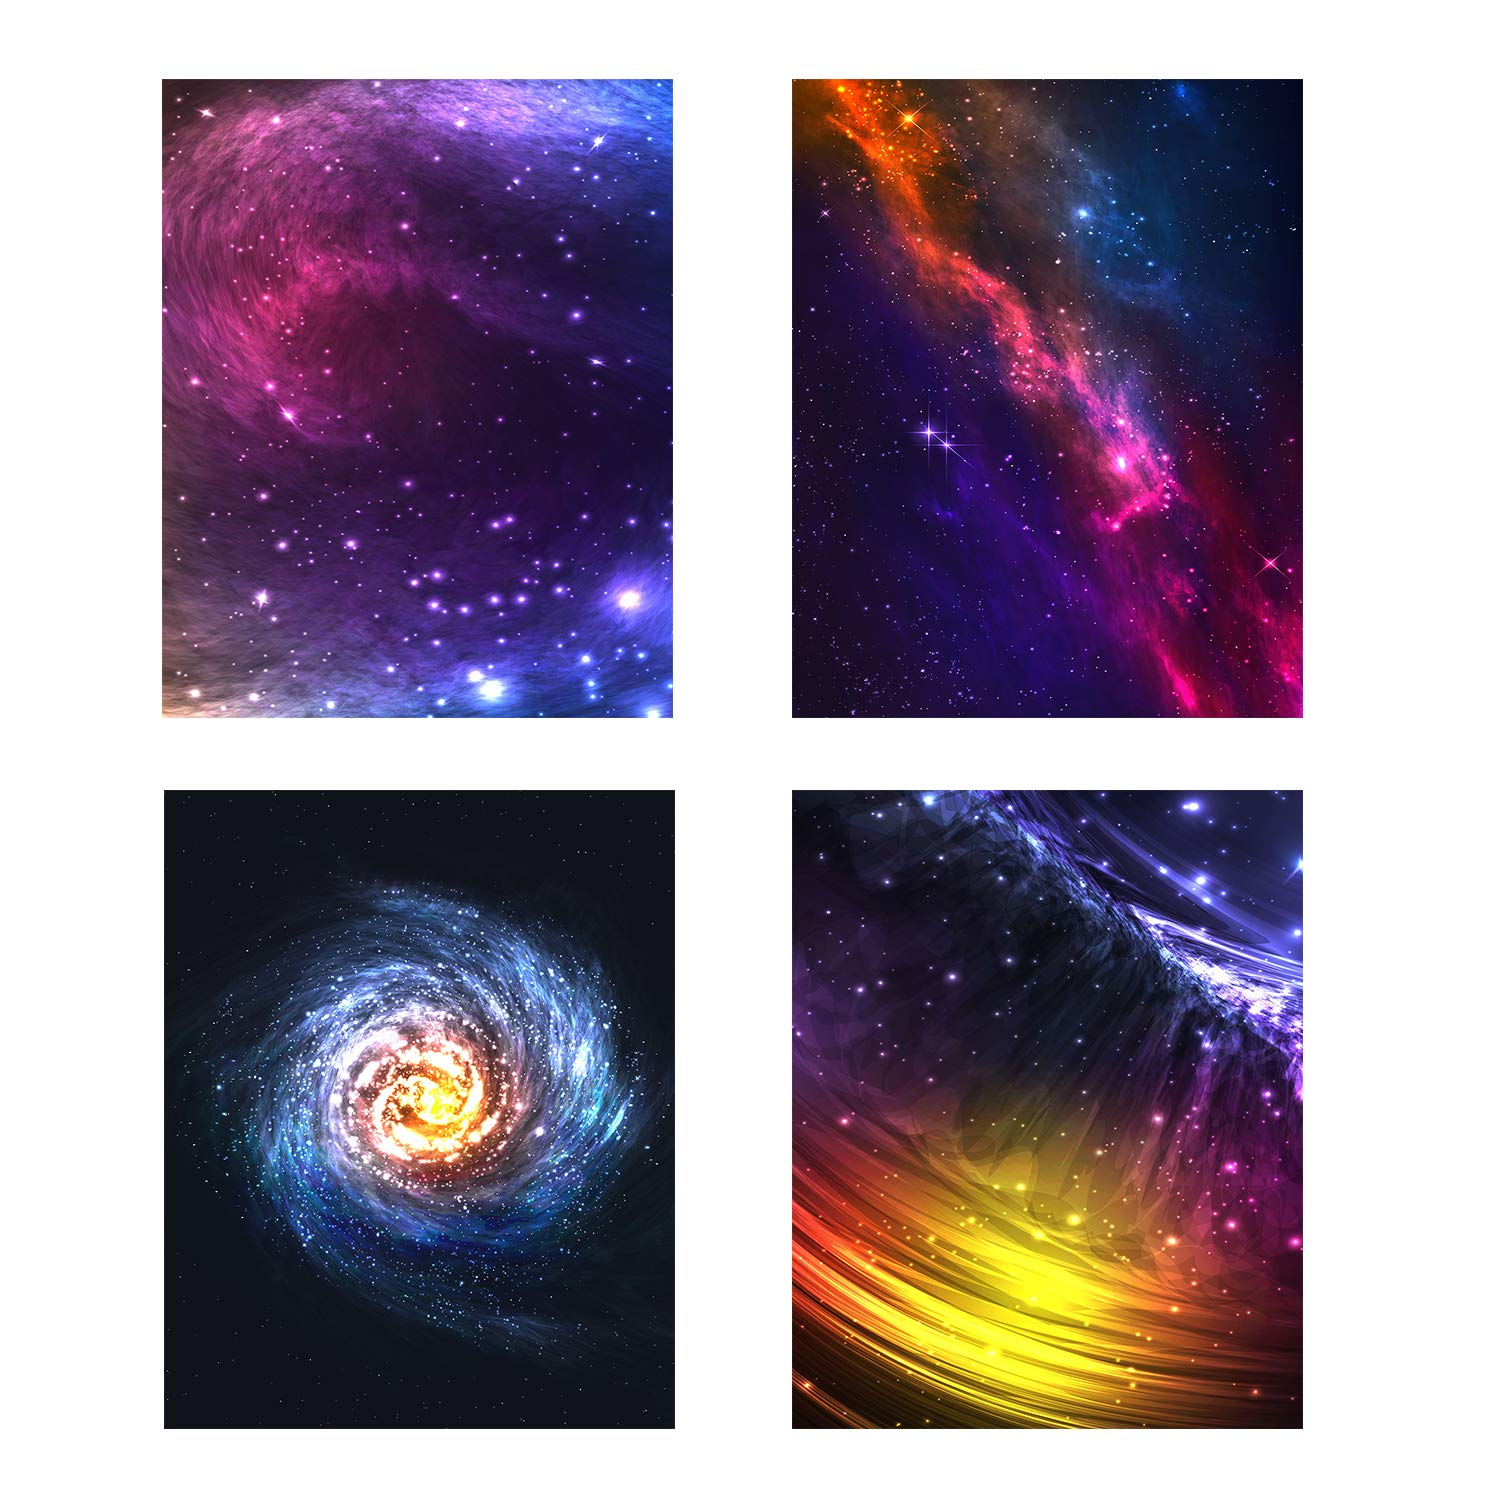 Galaxy and Space Canvas Wall Art - Colorful Starry Pictures for Living Room/Blue Starlight Nebula Nursery Decor Artwork/Office Decorations 4 Pieces 8x10 Inches Unframed Print Painting